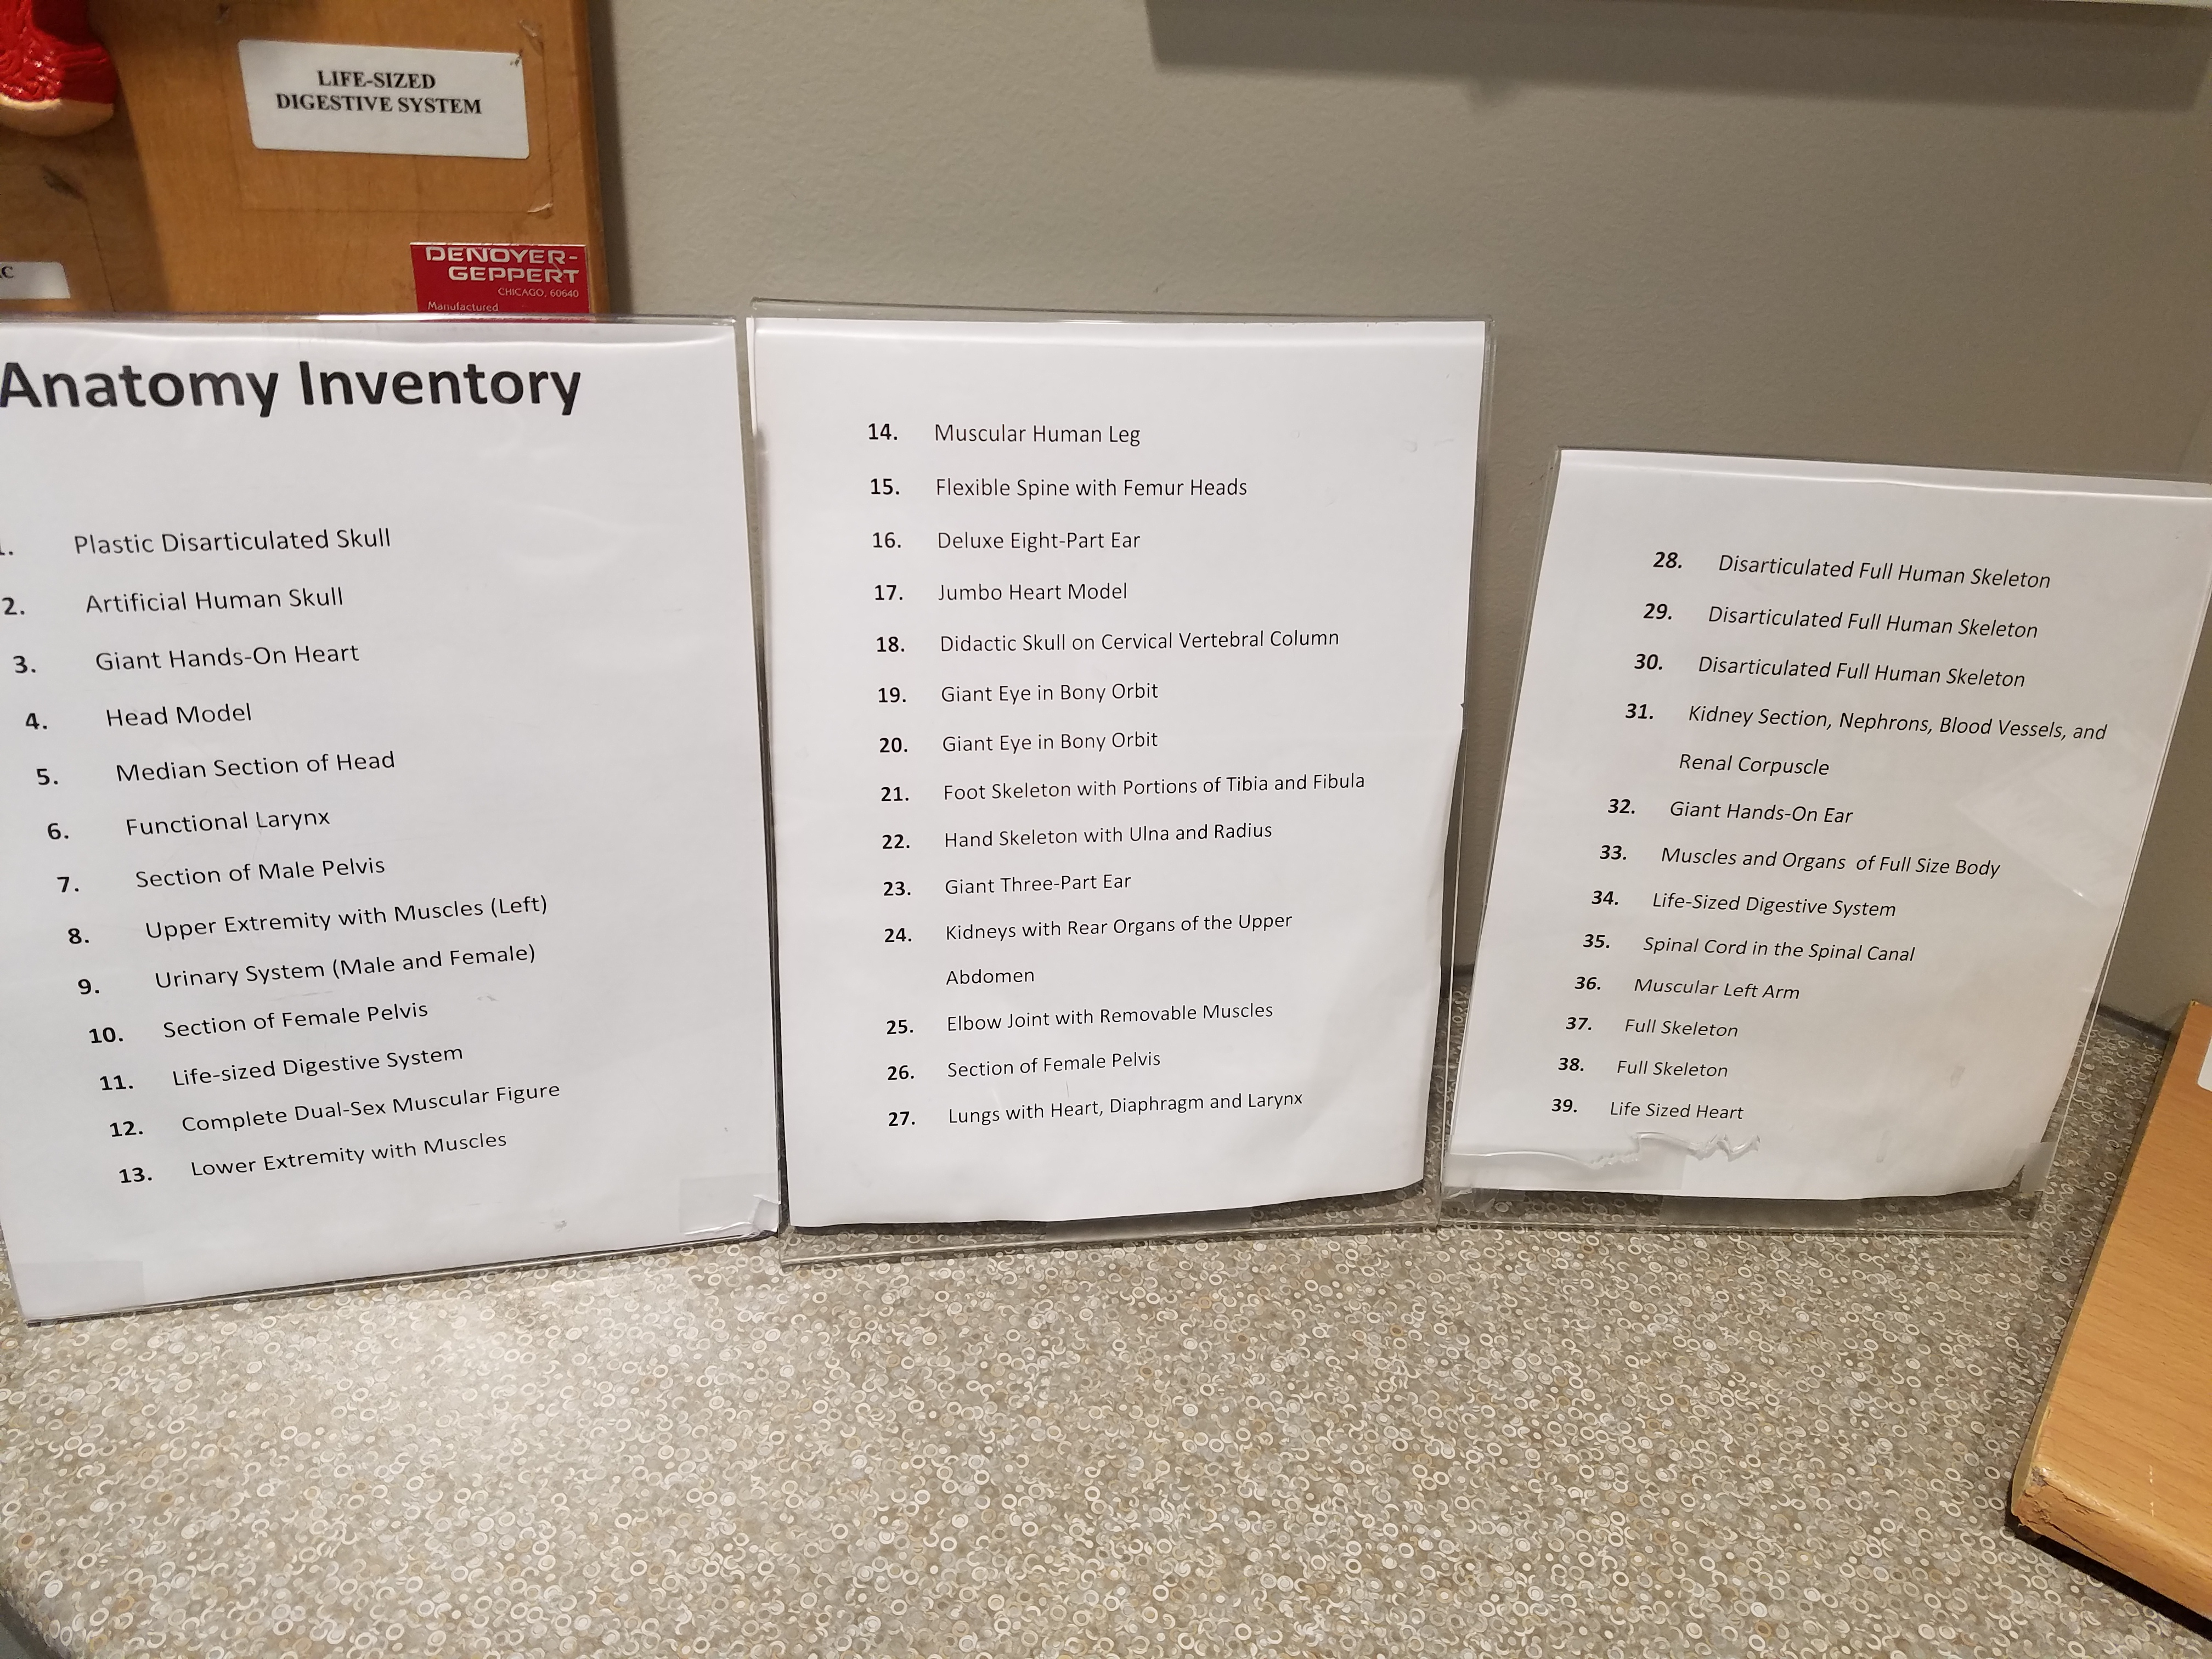 Anatomy room inventory list